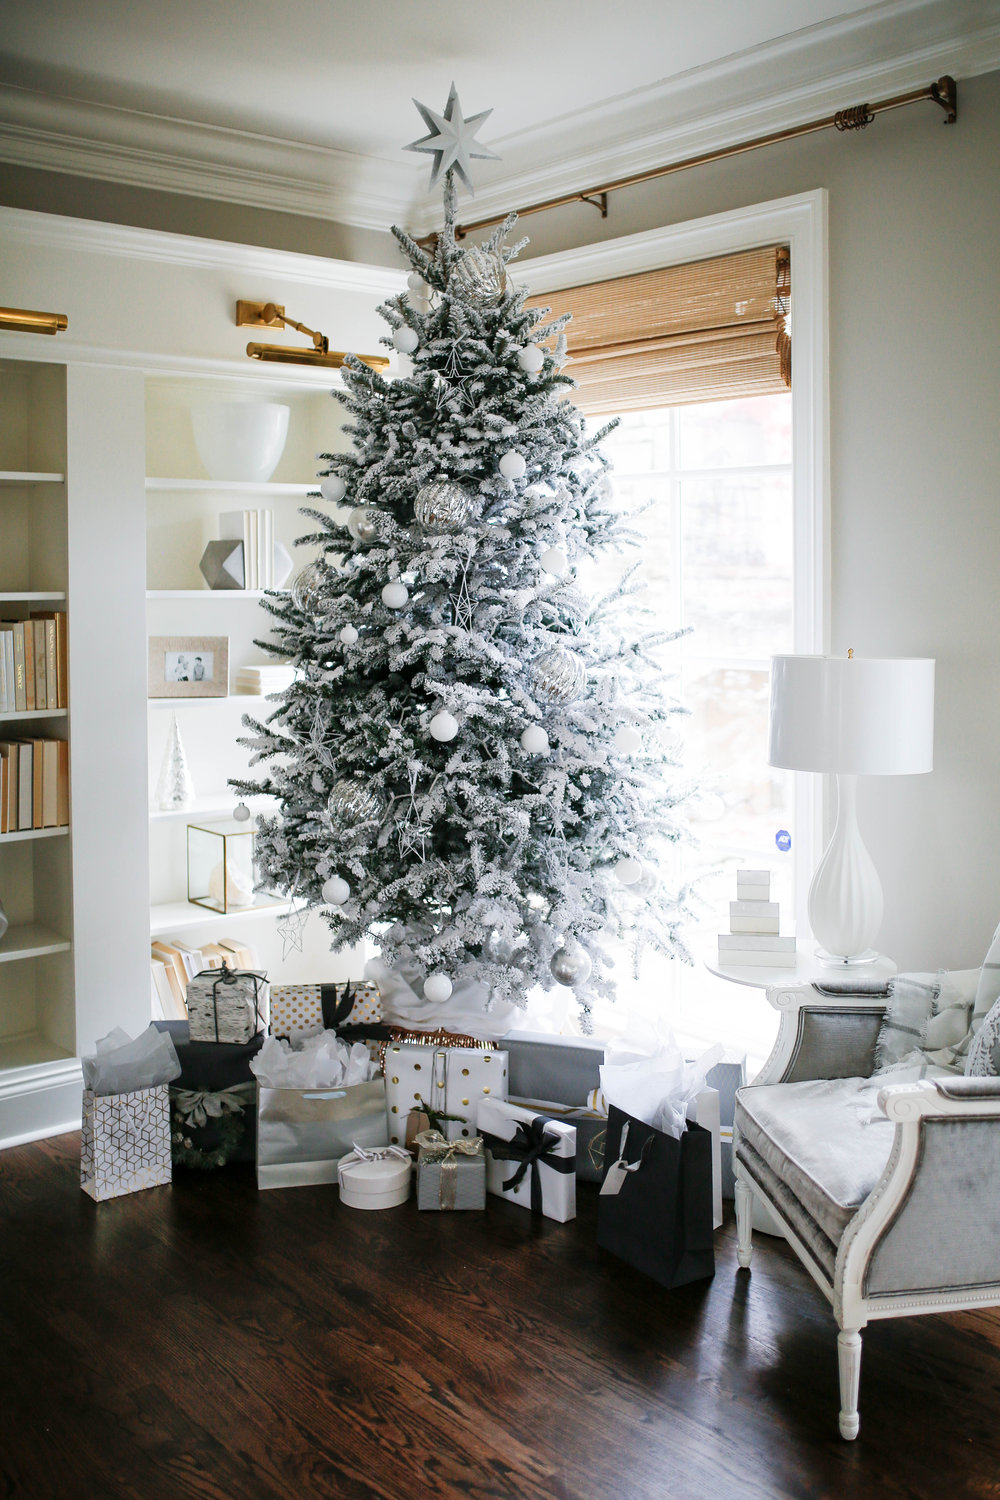 White flocked Christmas tree with white and silver ornaments, a modern christmas tree